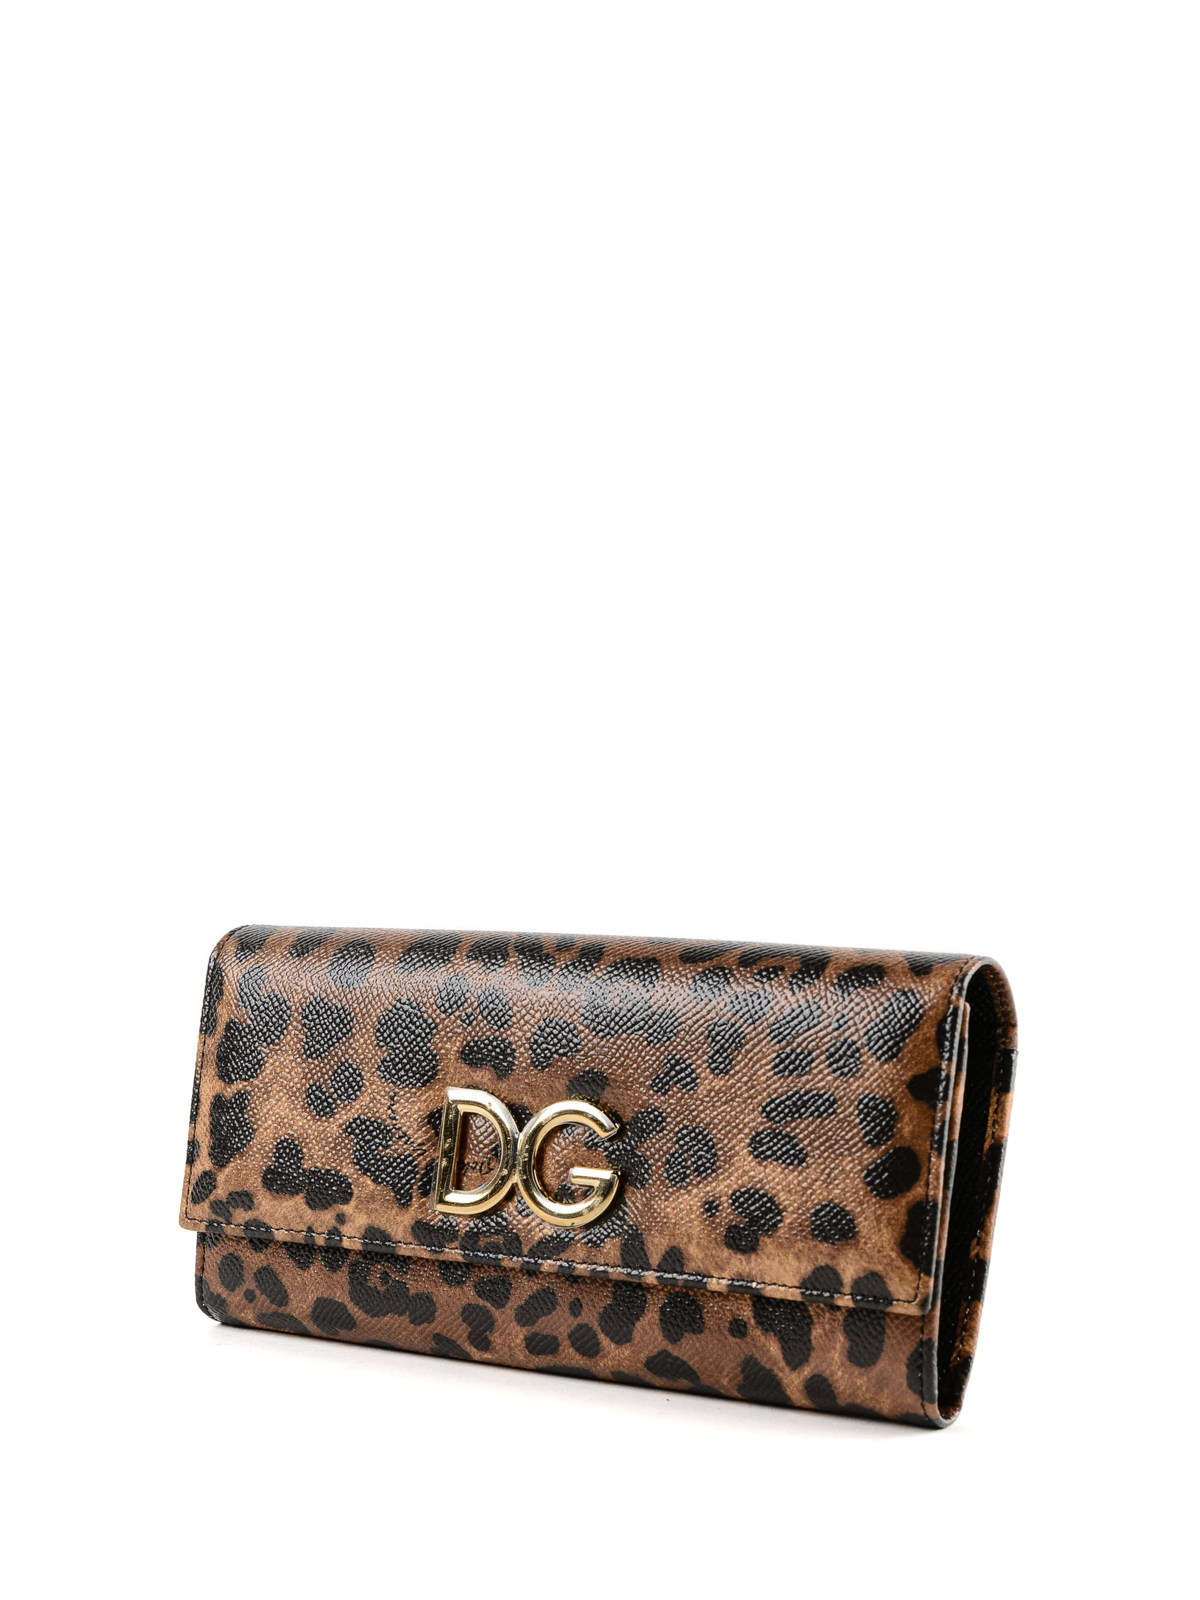 5a13fb3ade6 DOLCE & GABBANA: wallets & purses online - Dauphine leather Leo wallet